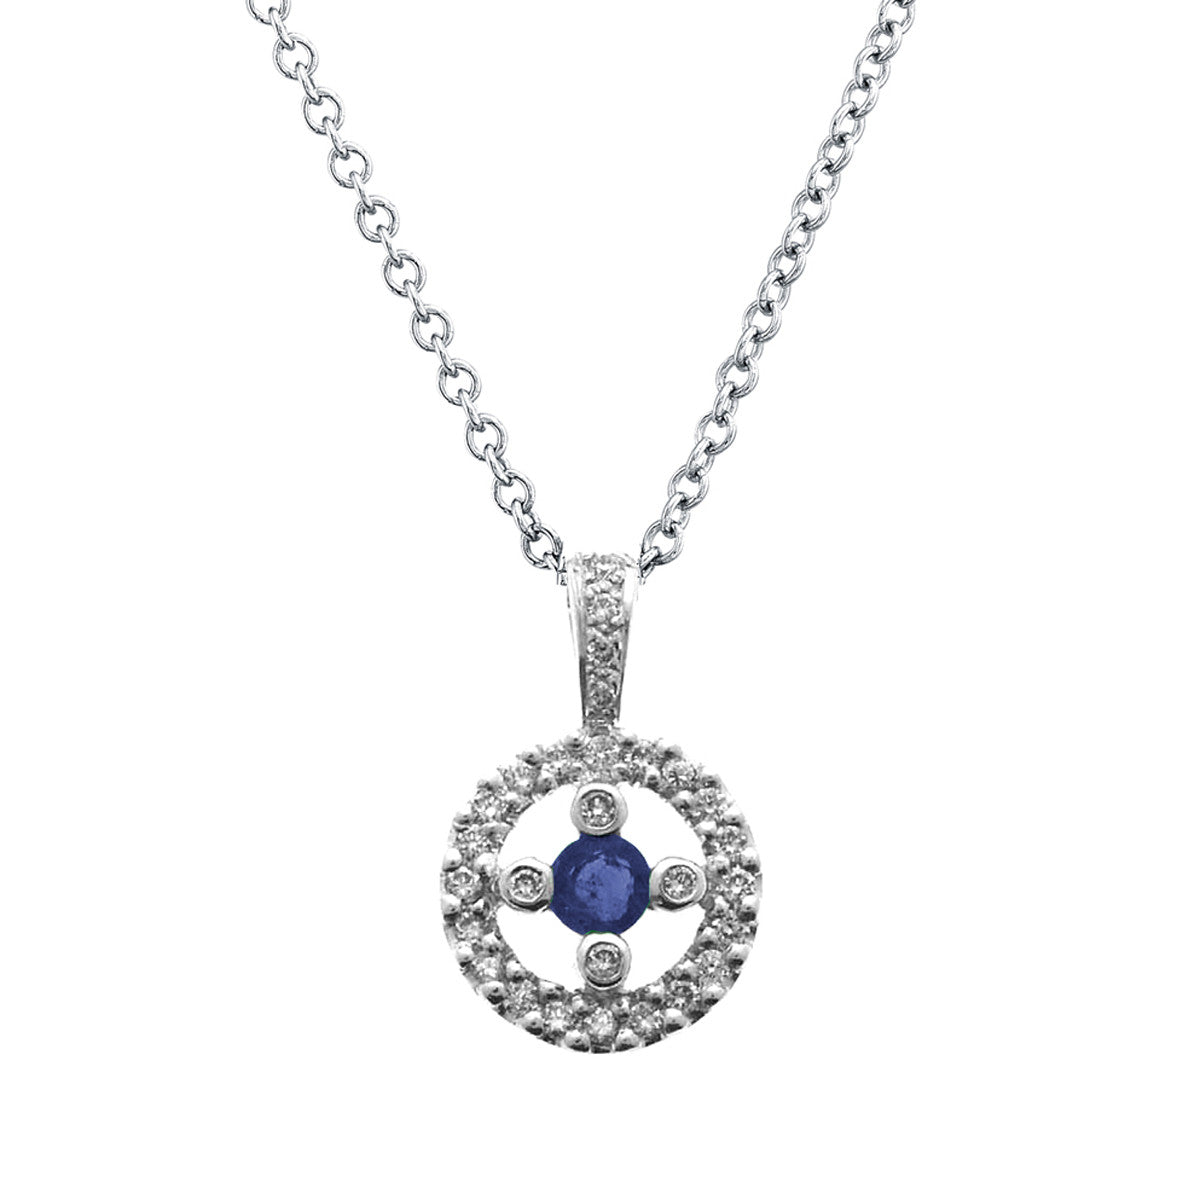 DIAMOND BLUE SAPPHIRE CIRCLE PENDANT 18K WHITE GOLD 0.30CTW